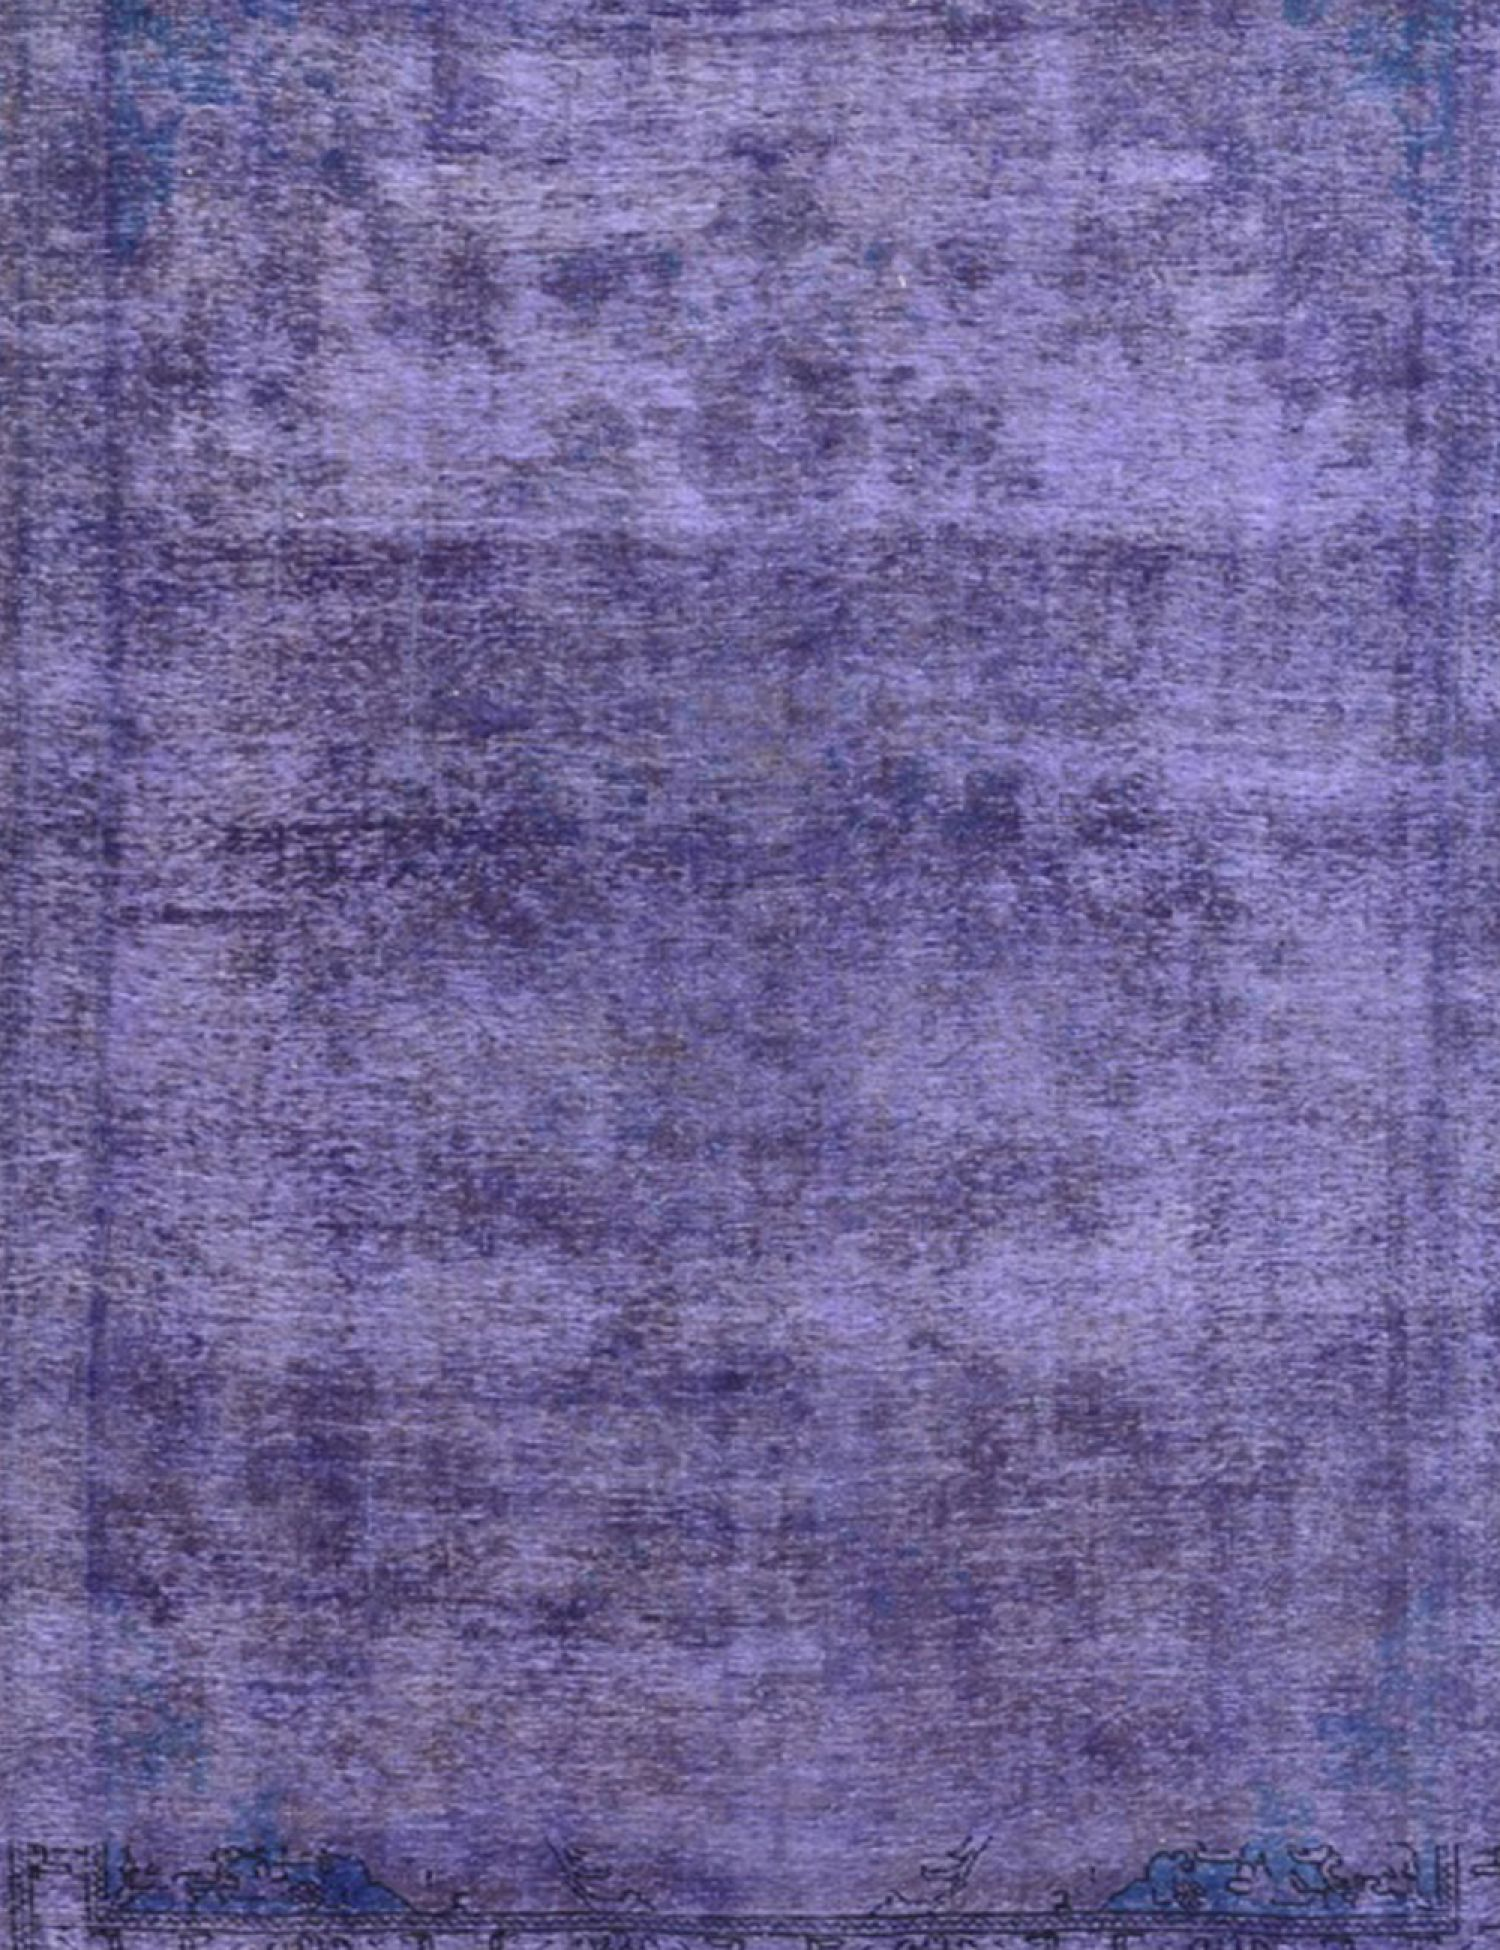 Vintage Carpet  purple <br/>365 x 244 cm